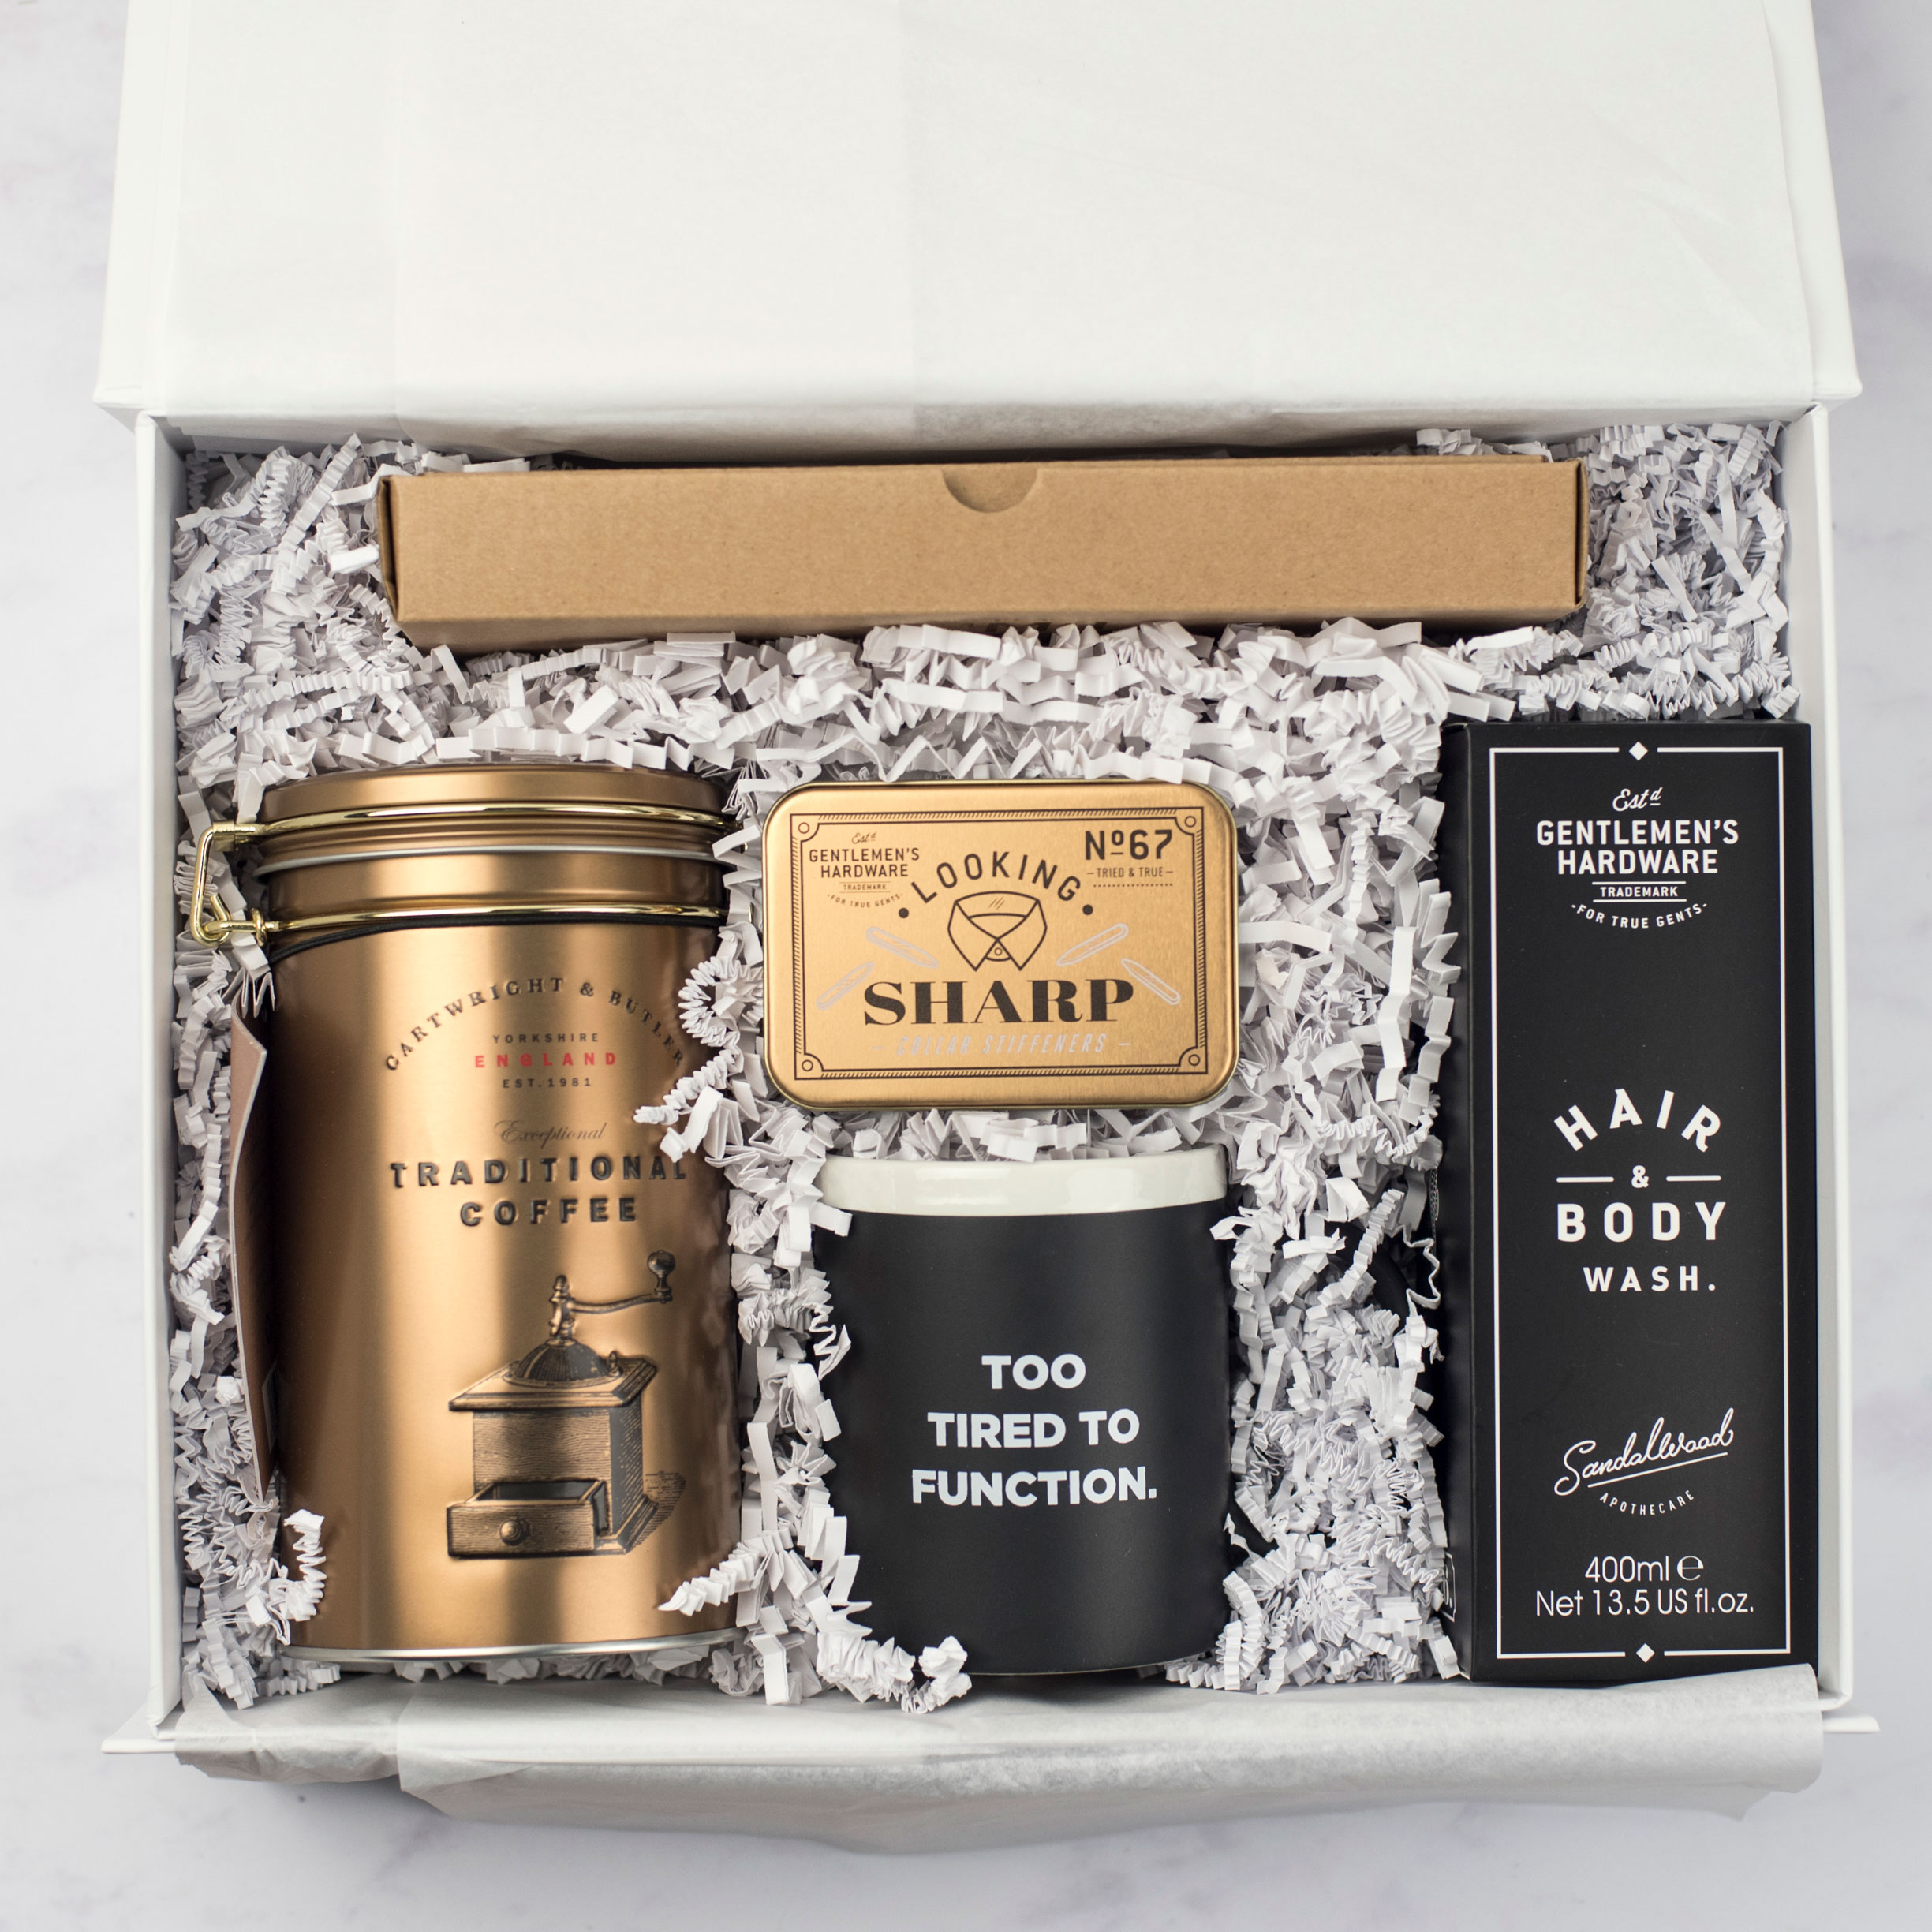 Men's Morning Glory LuxeBox, £54.95